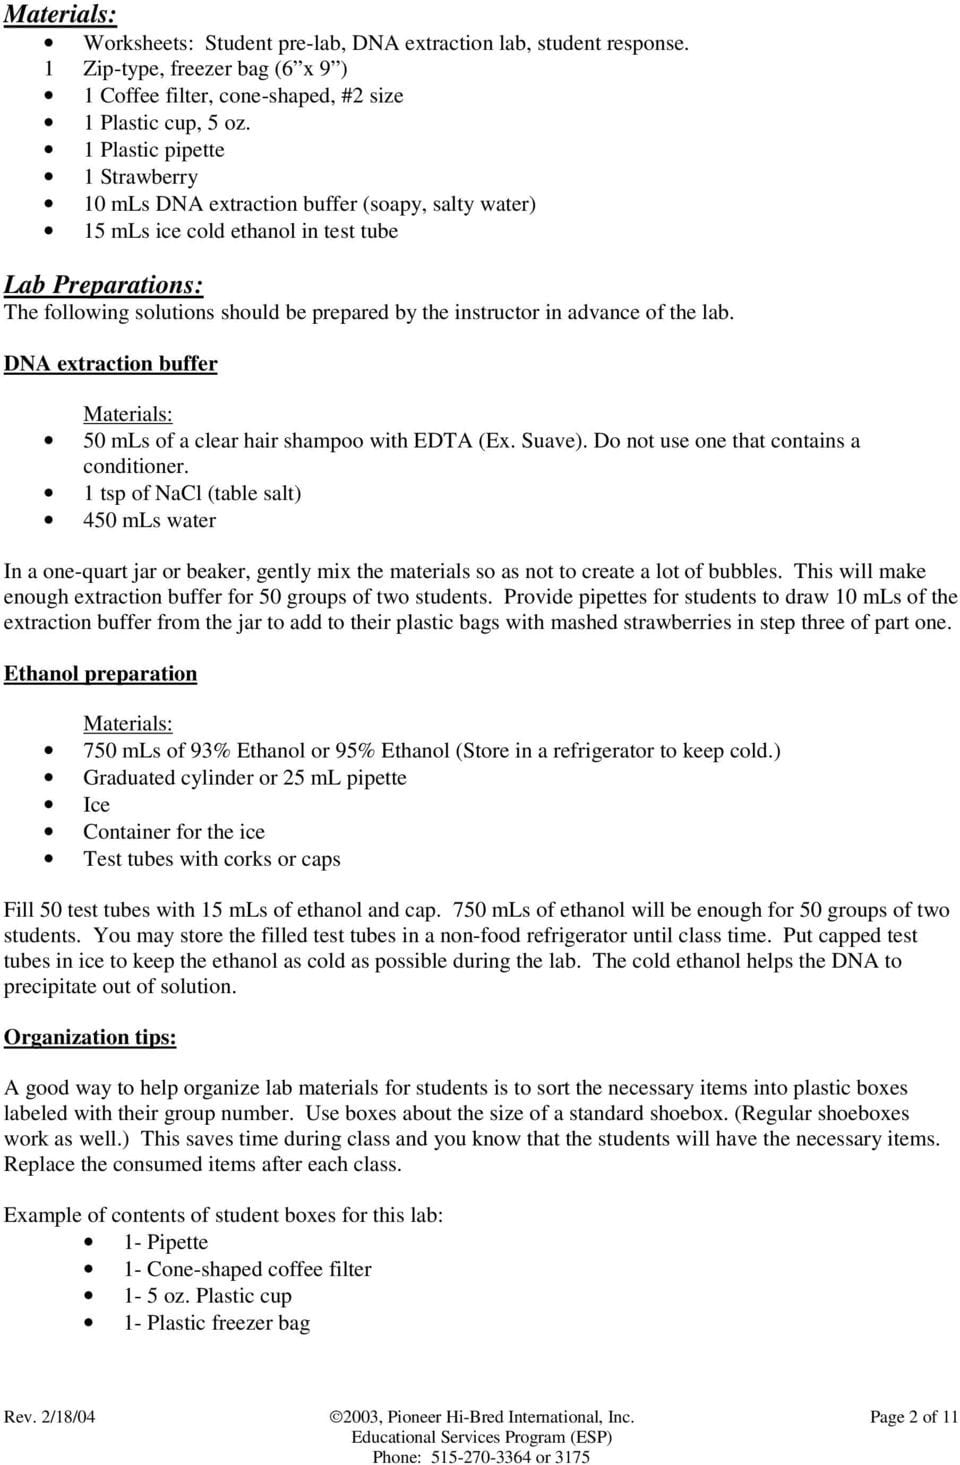 Module 3 Strawberry Dna Extraction Pdf | db-excel.com